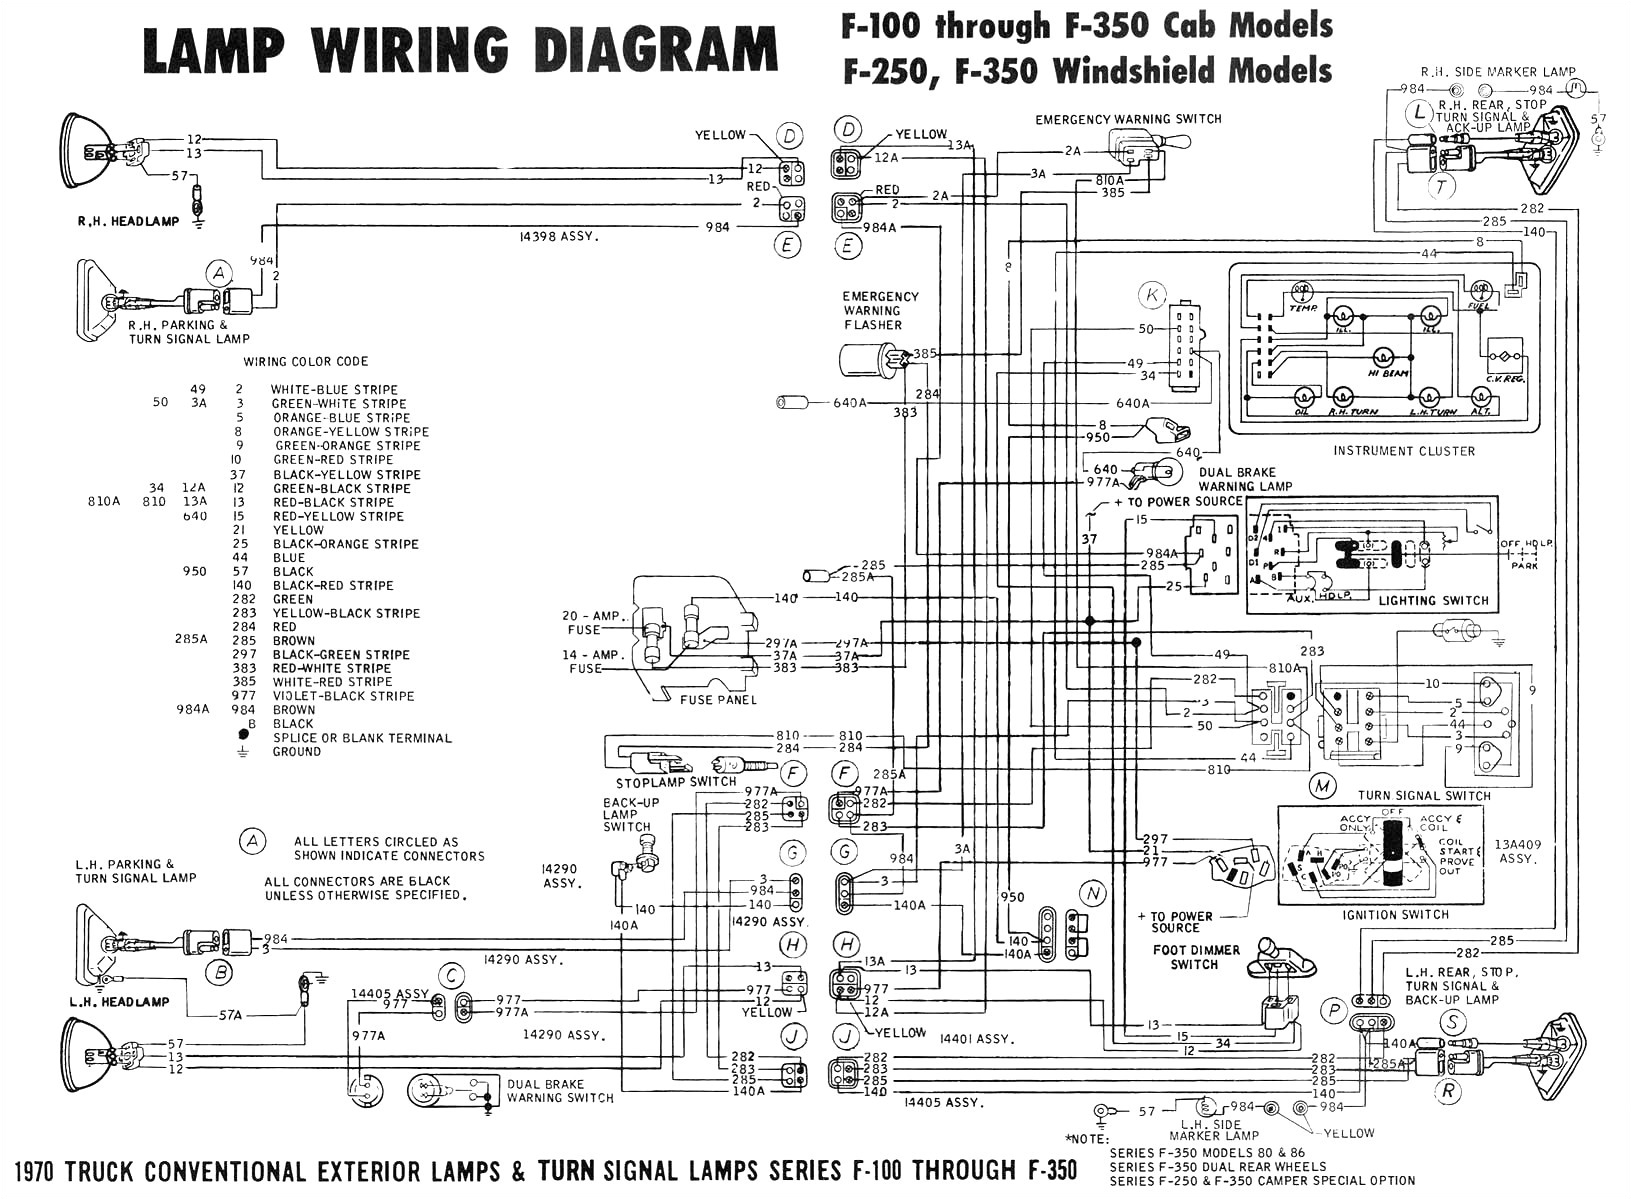 93 ford e 250 wiring diagram wiring diagram name light switch wiring diagram 1998 ford e250